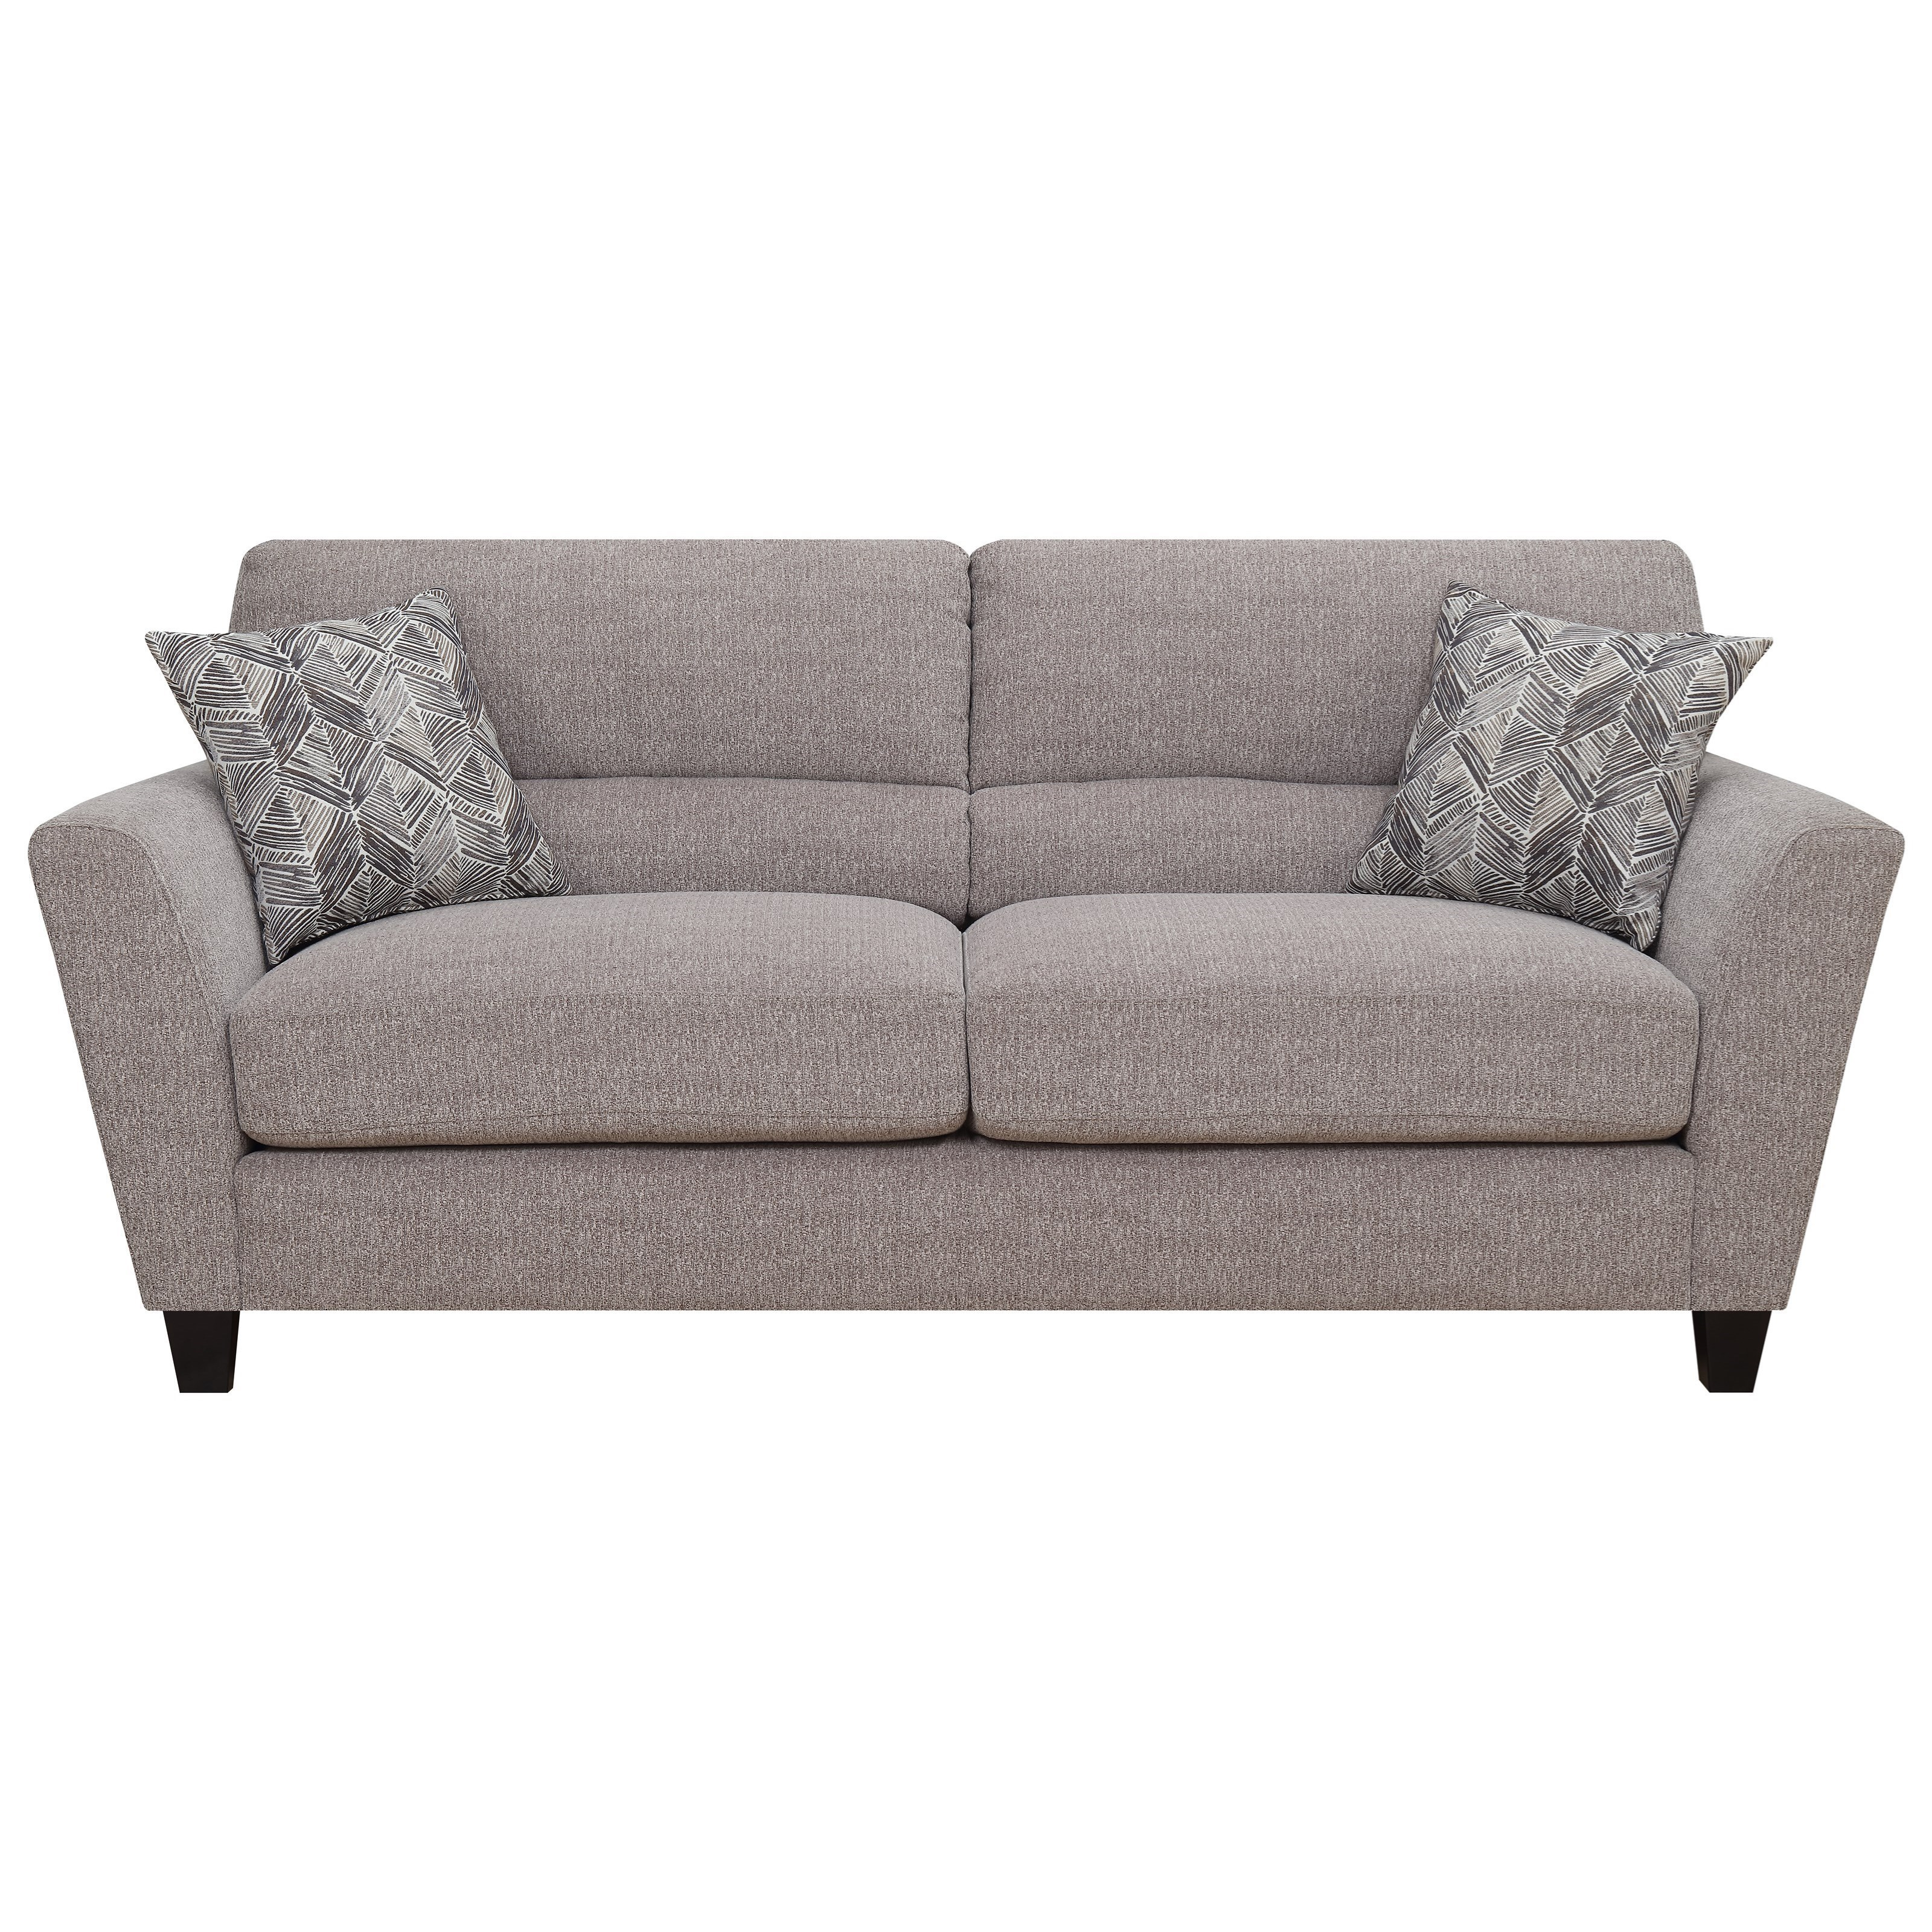 Contemporary Sofa w/ 2 Accent Pillows